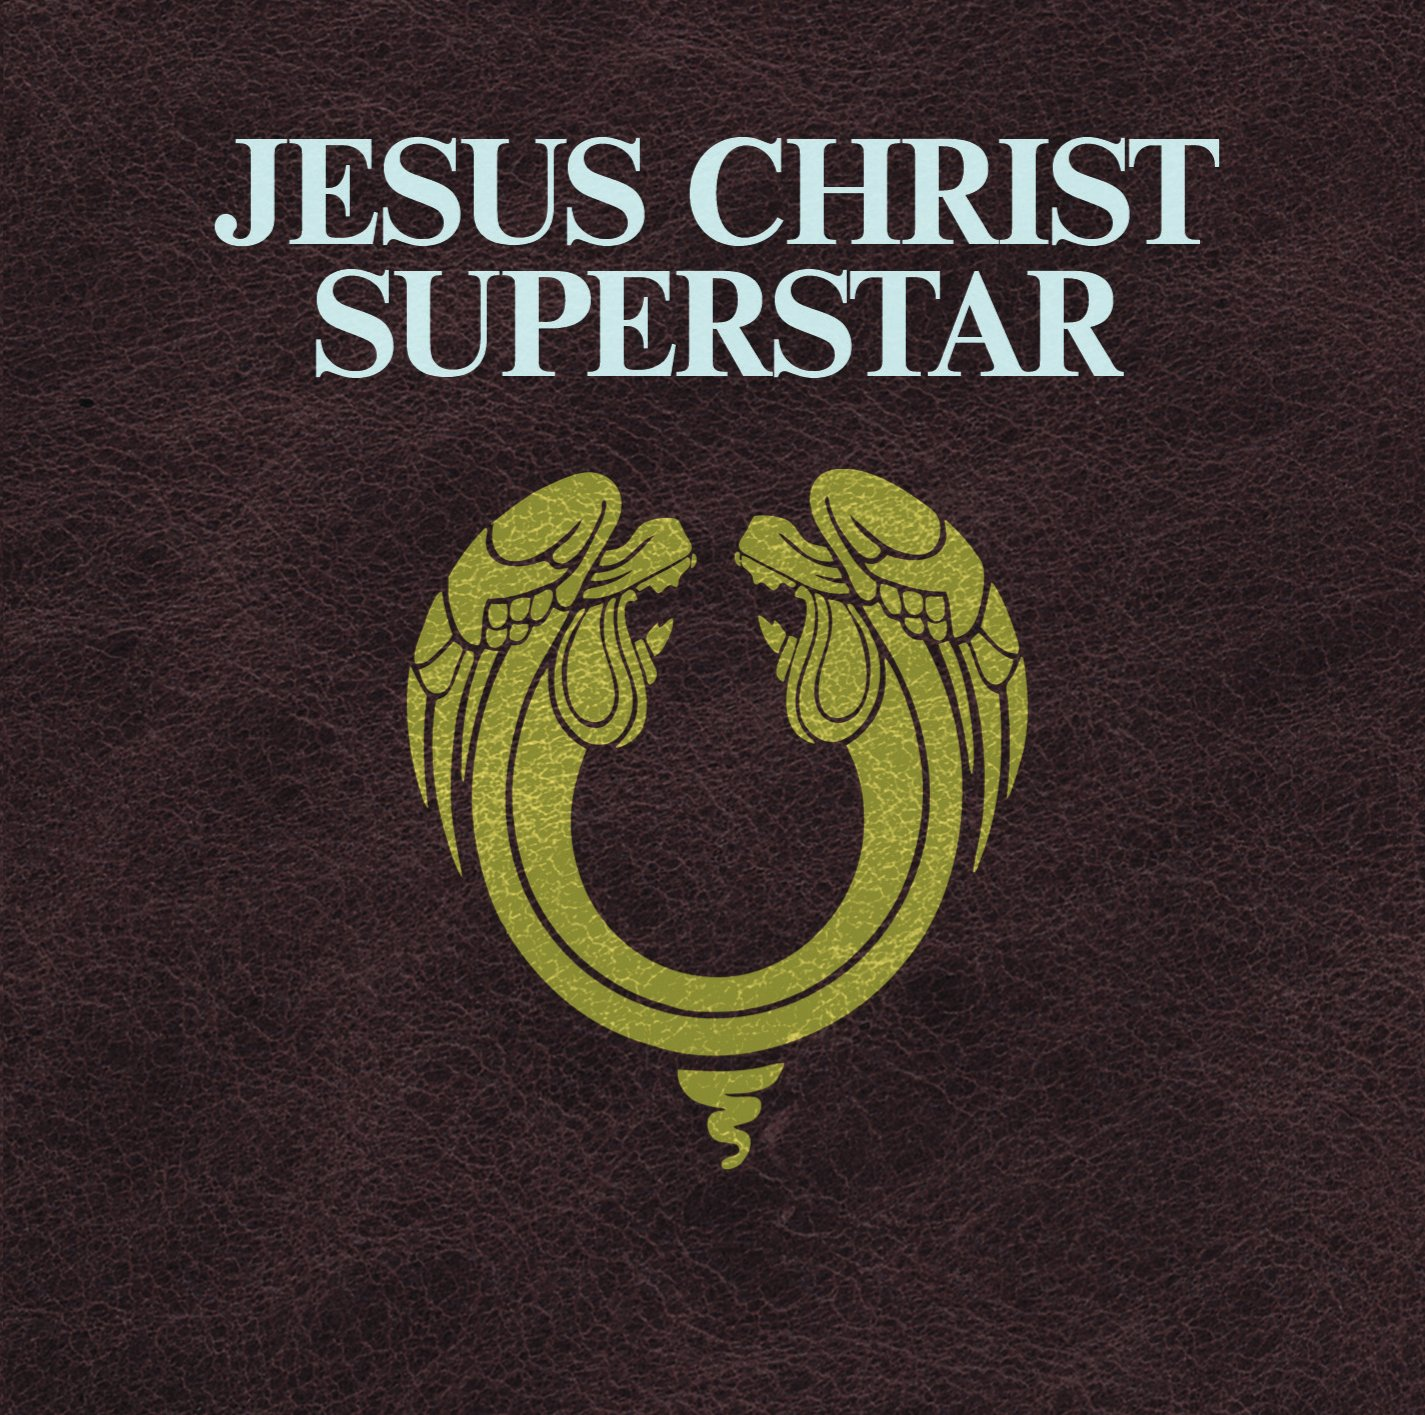 Jesus Christ Superstar - Superstar Lyrics